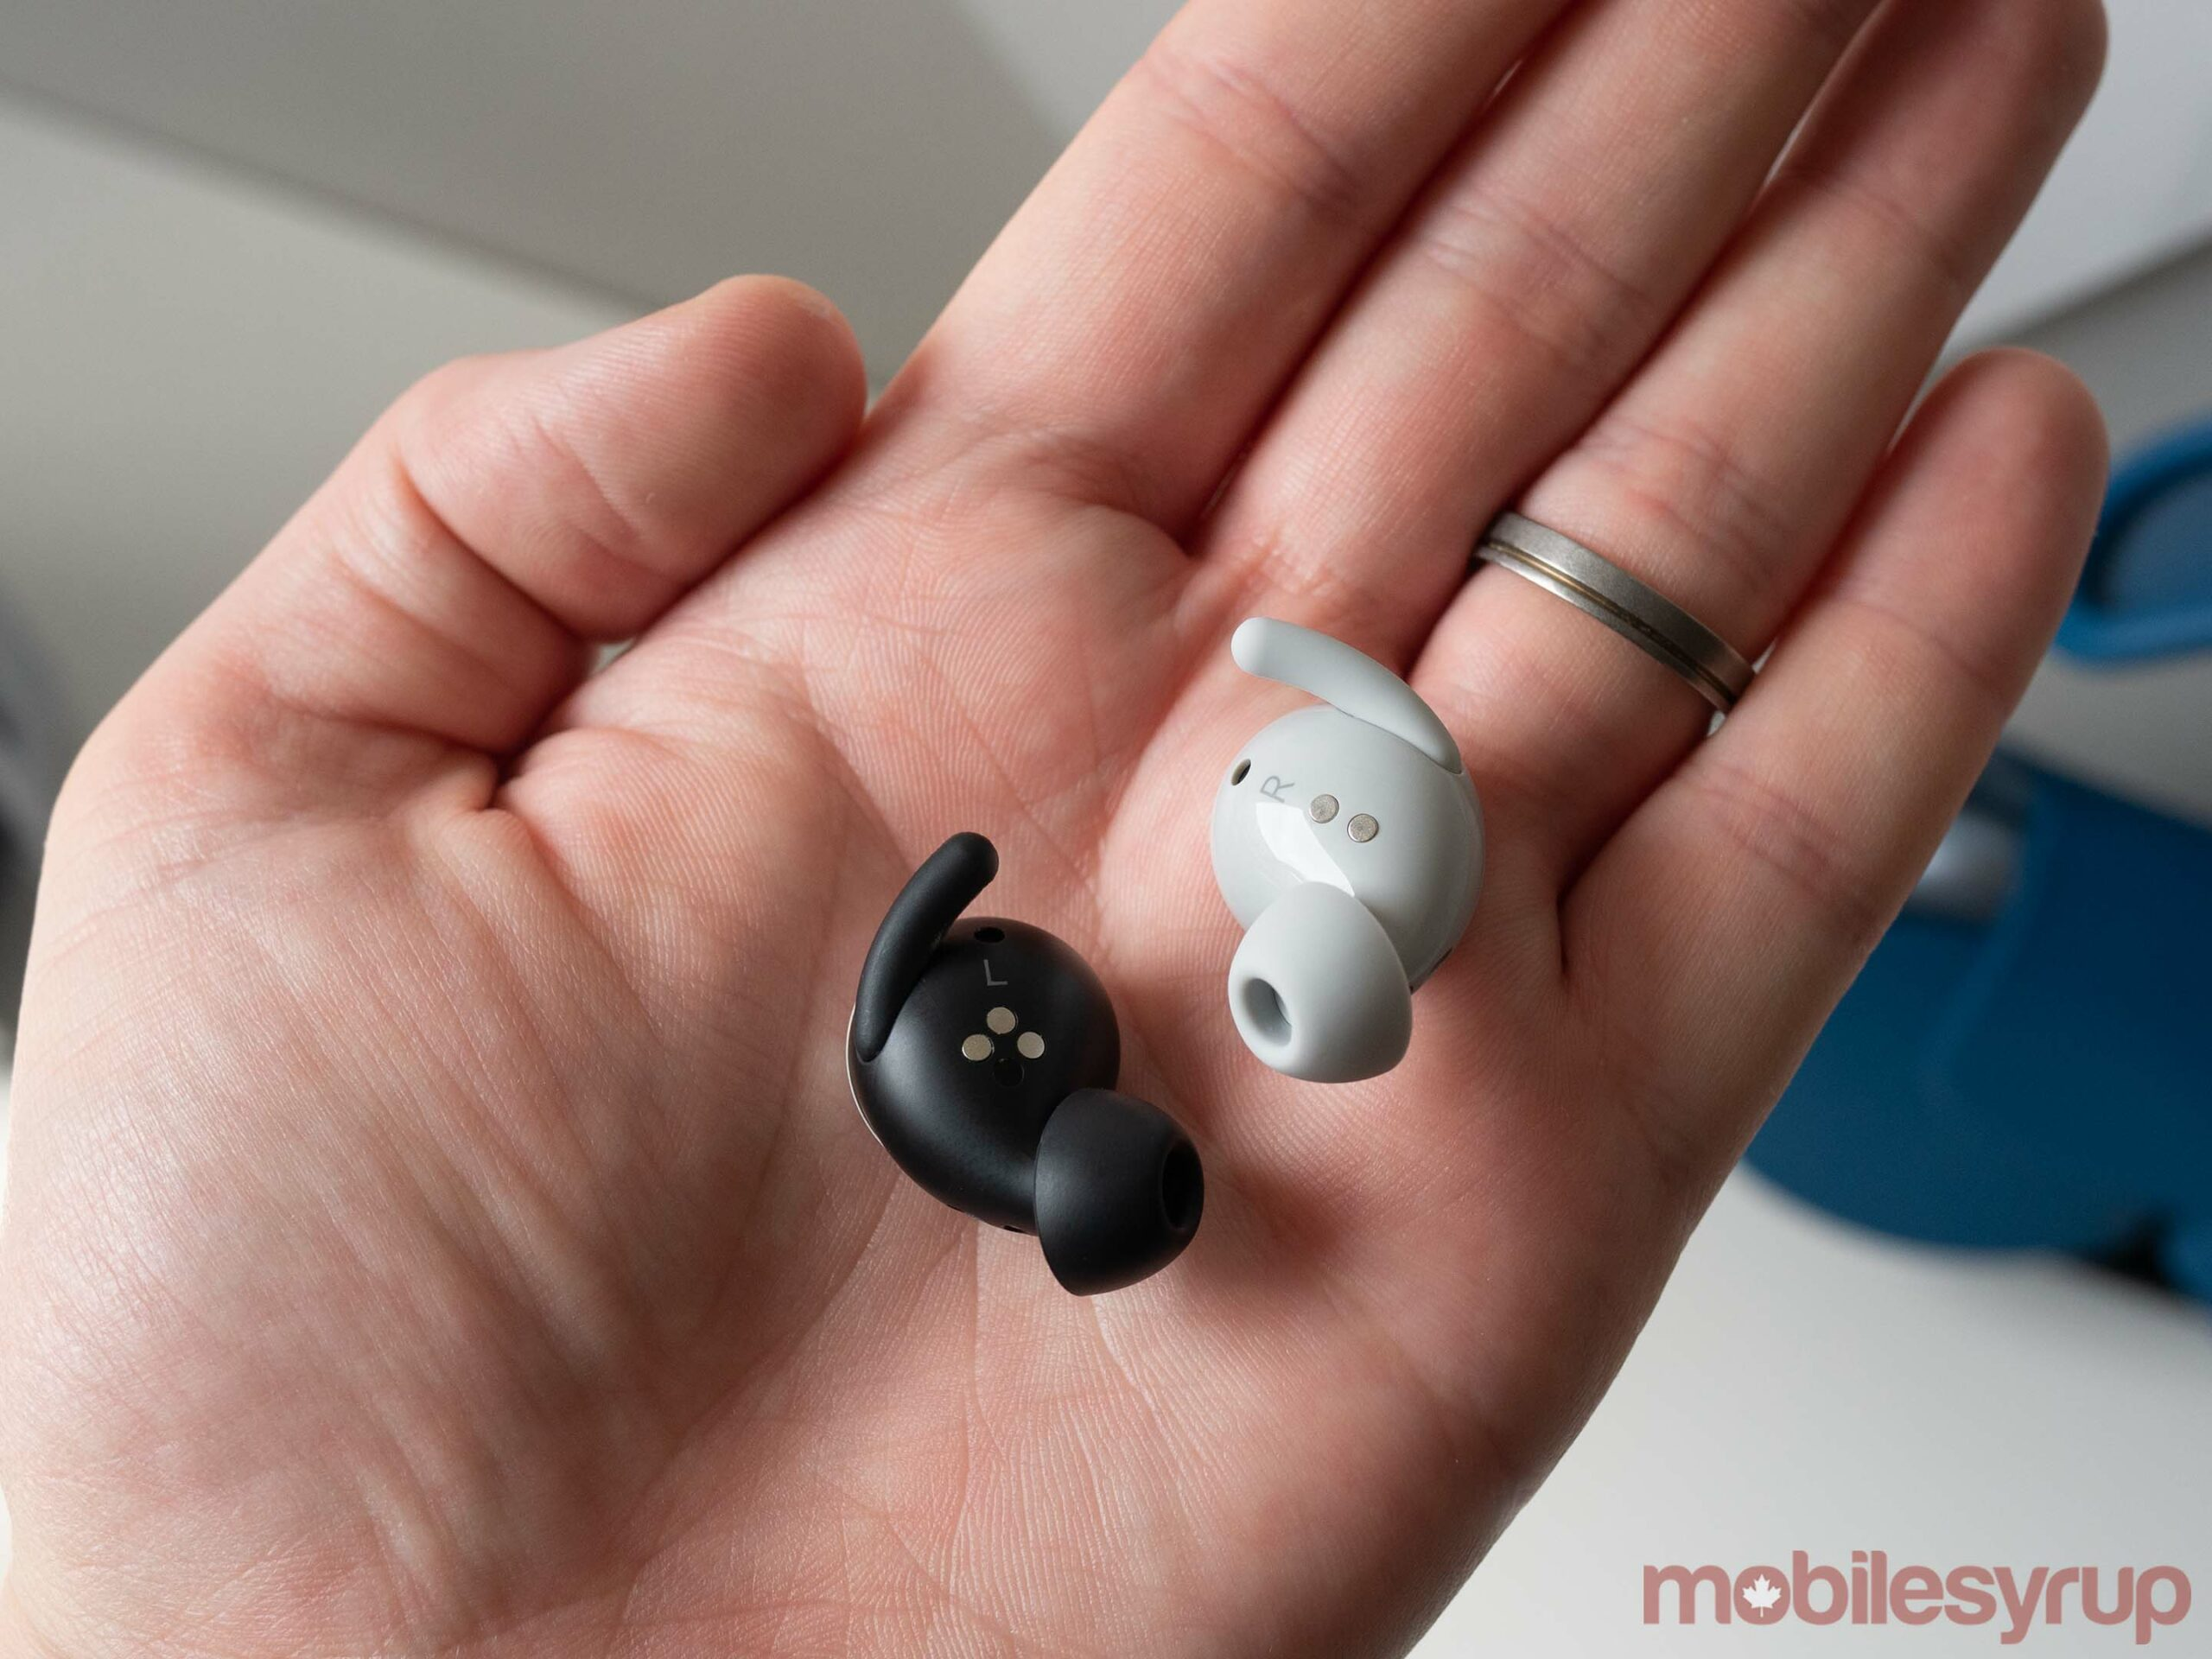 Pixel Buds Series-A beside the Pixel Buds (2020)